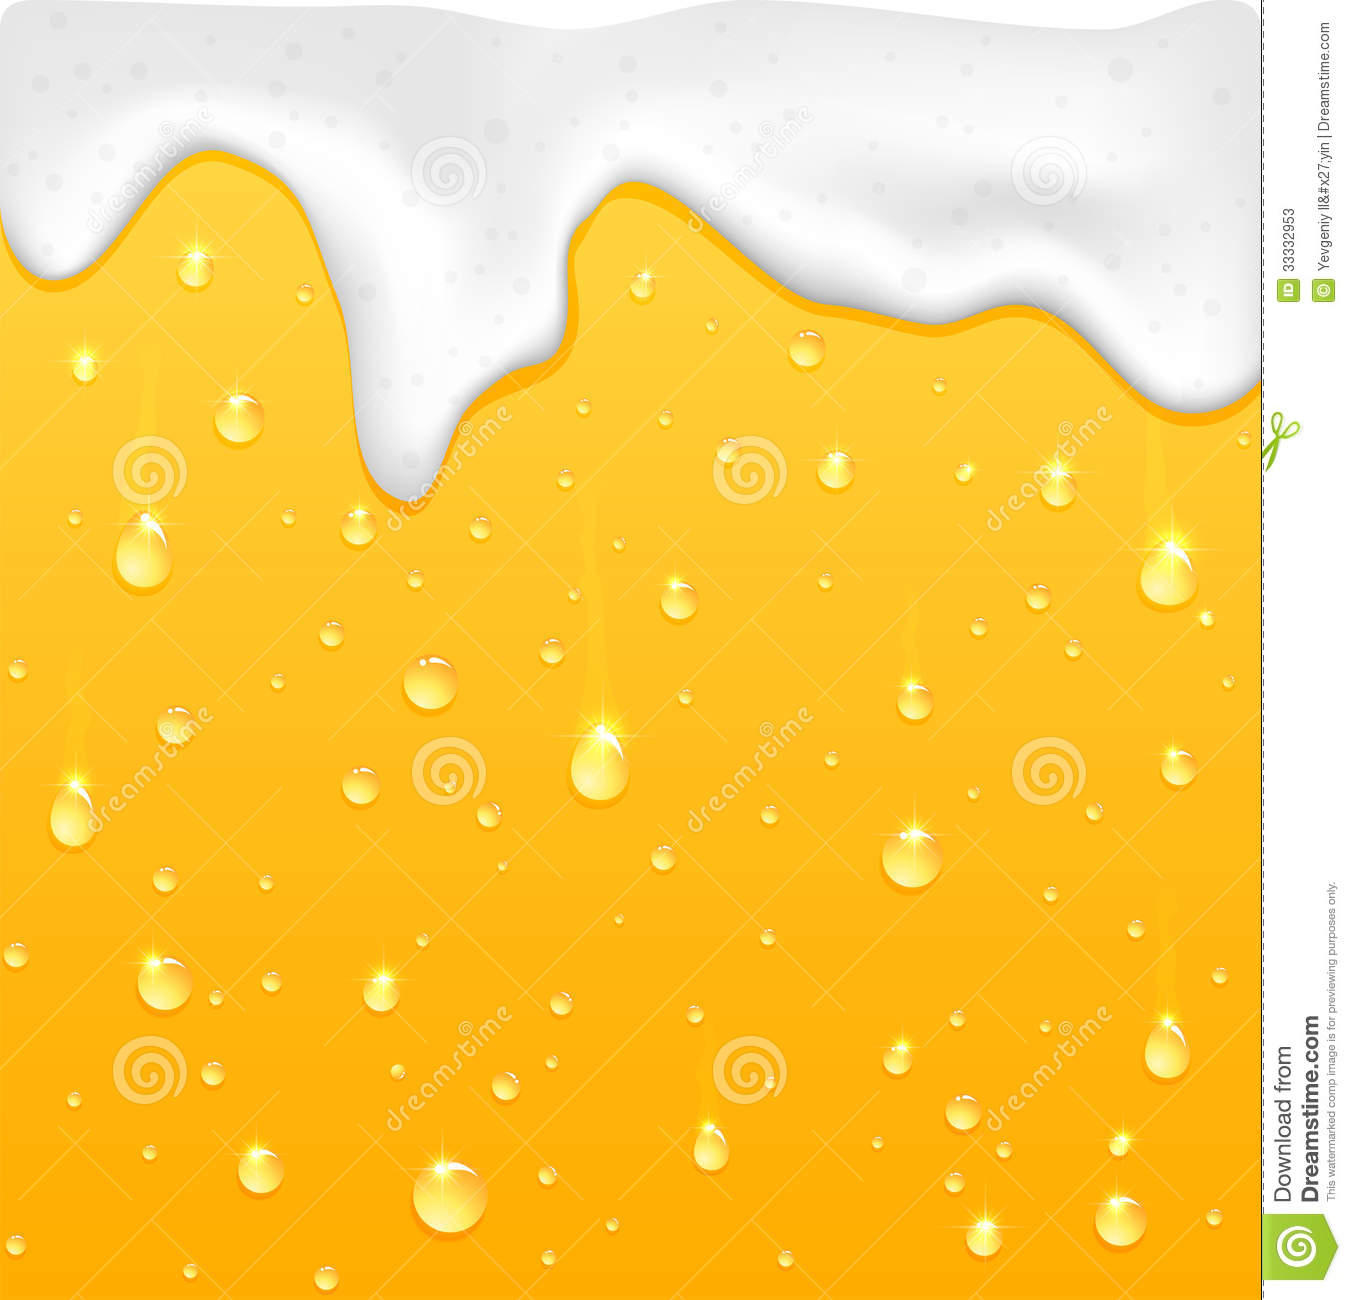 Stock Photos Beer Foam Drops Glass Yellow Drink Background Illustration Image33332953 in addition Juicebox 0120 in addition Stock Photo Fruit Logo Illustration Art Isolated Background Image35964970 further 474589868 furthermore Royalty Free Stock Image Italian Blue Soda Colorful Sodas Image32410426. on juice clip art